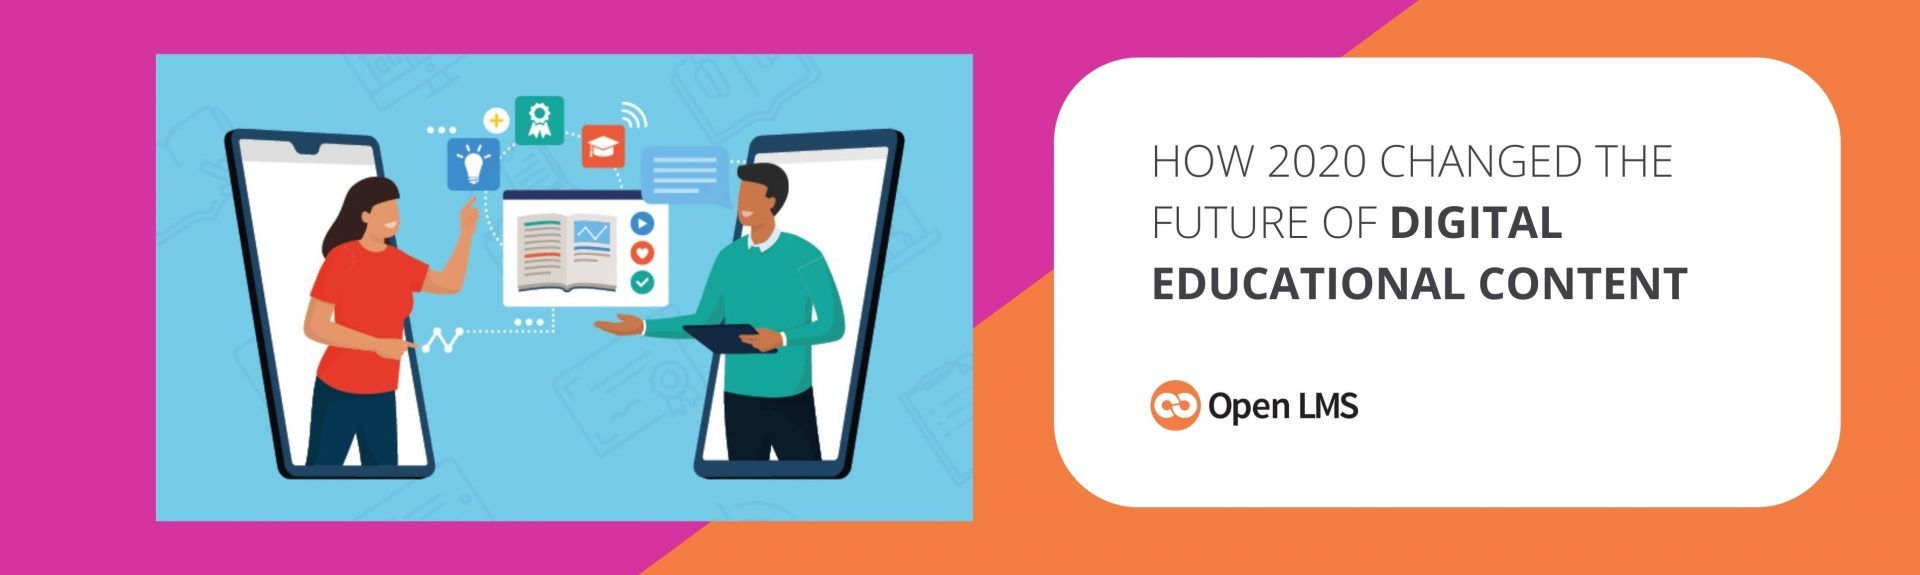 How 2020 Changed the Future of Digital Educational Content